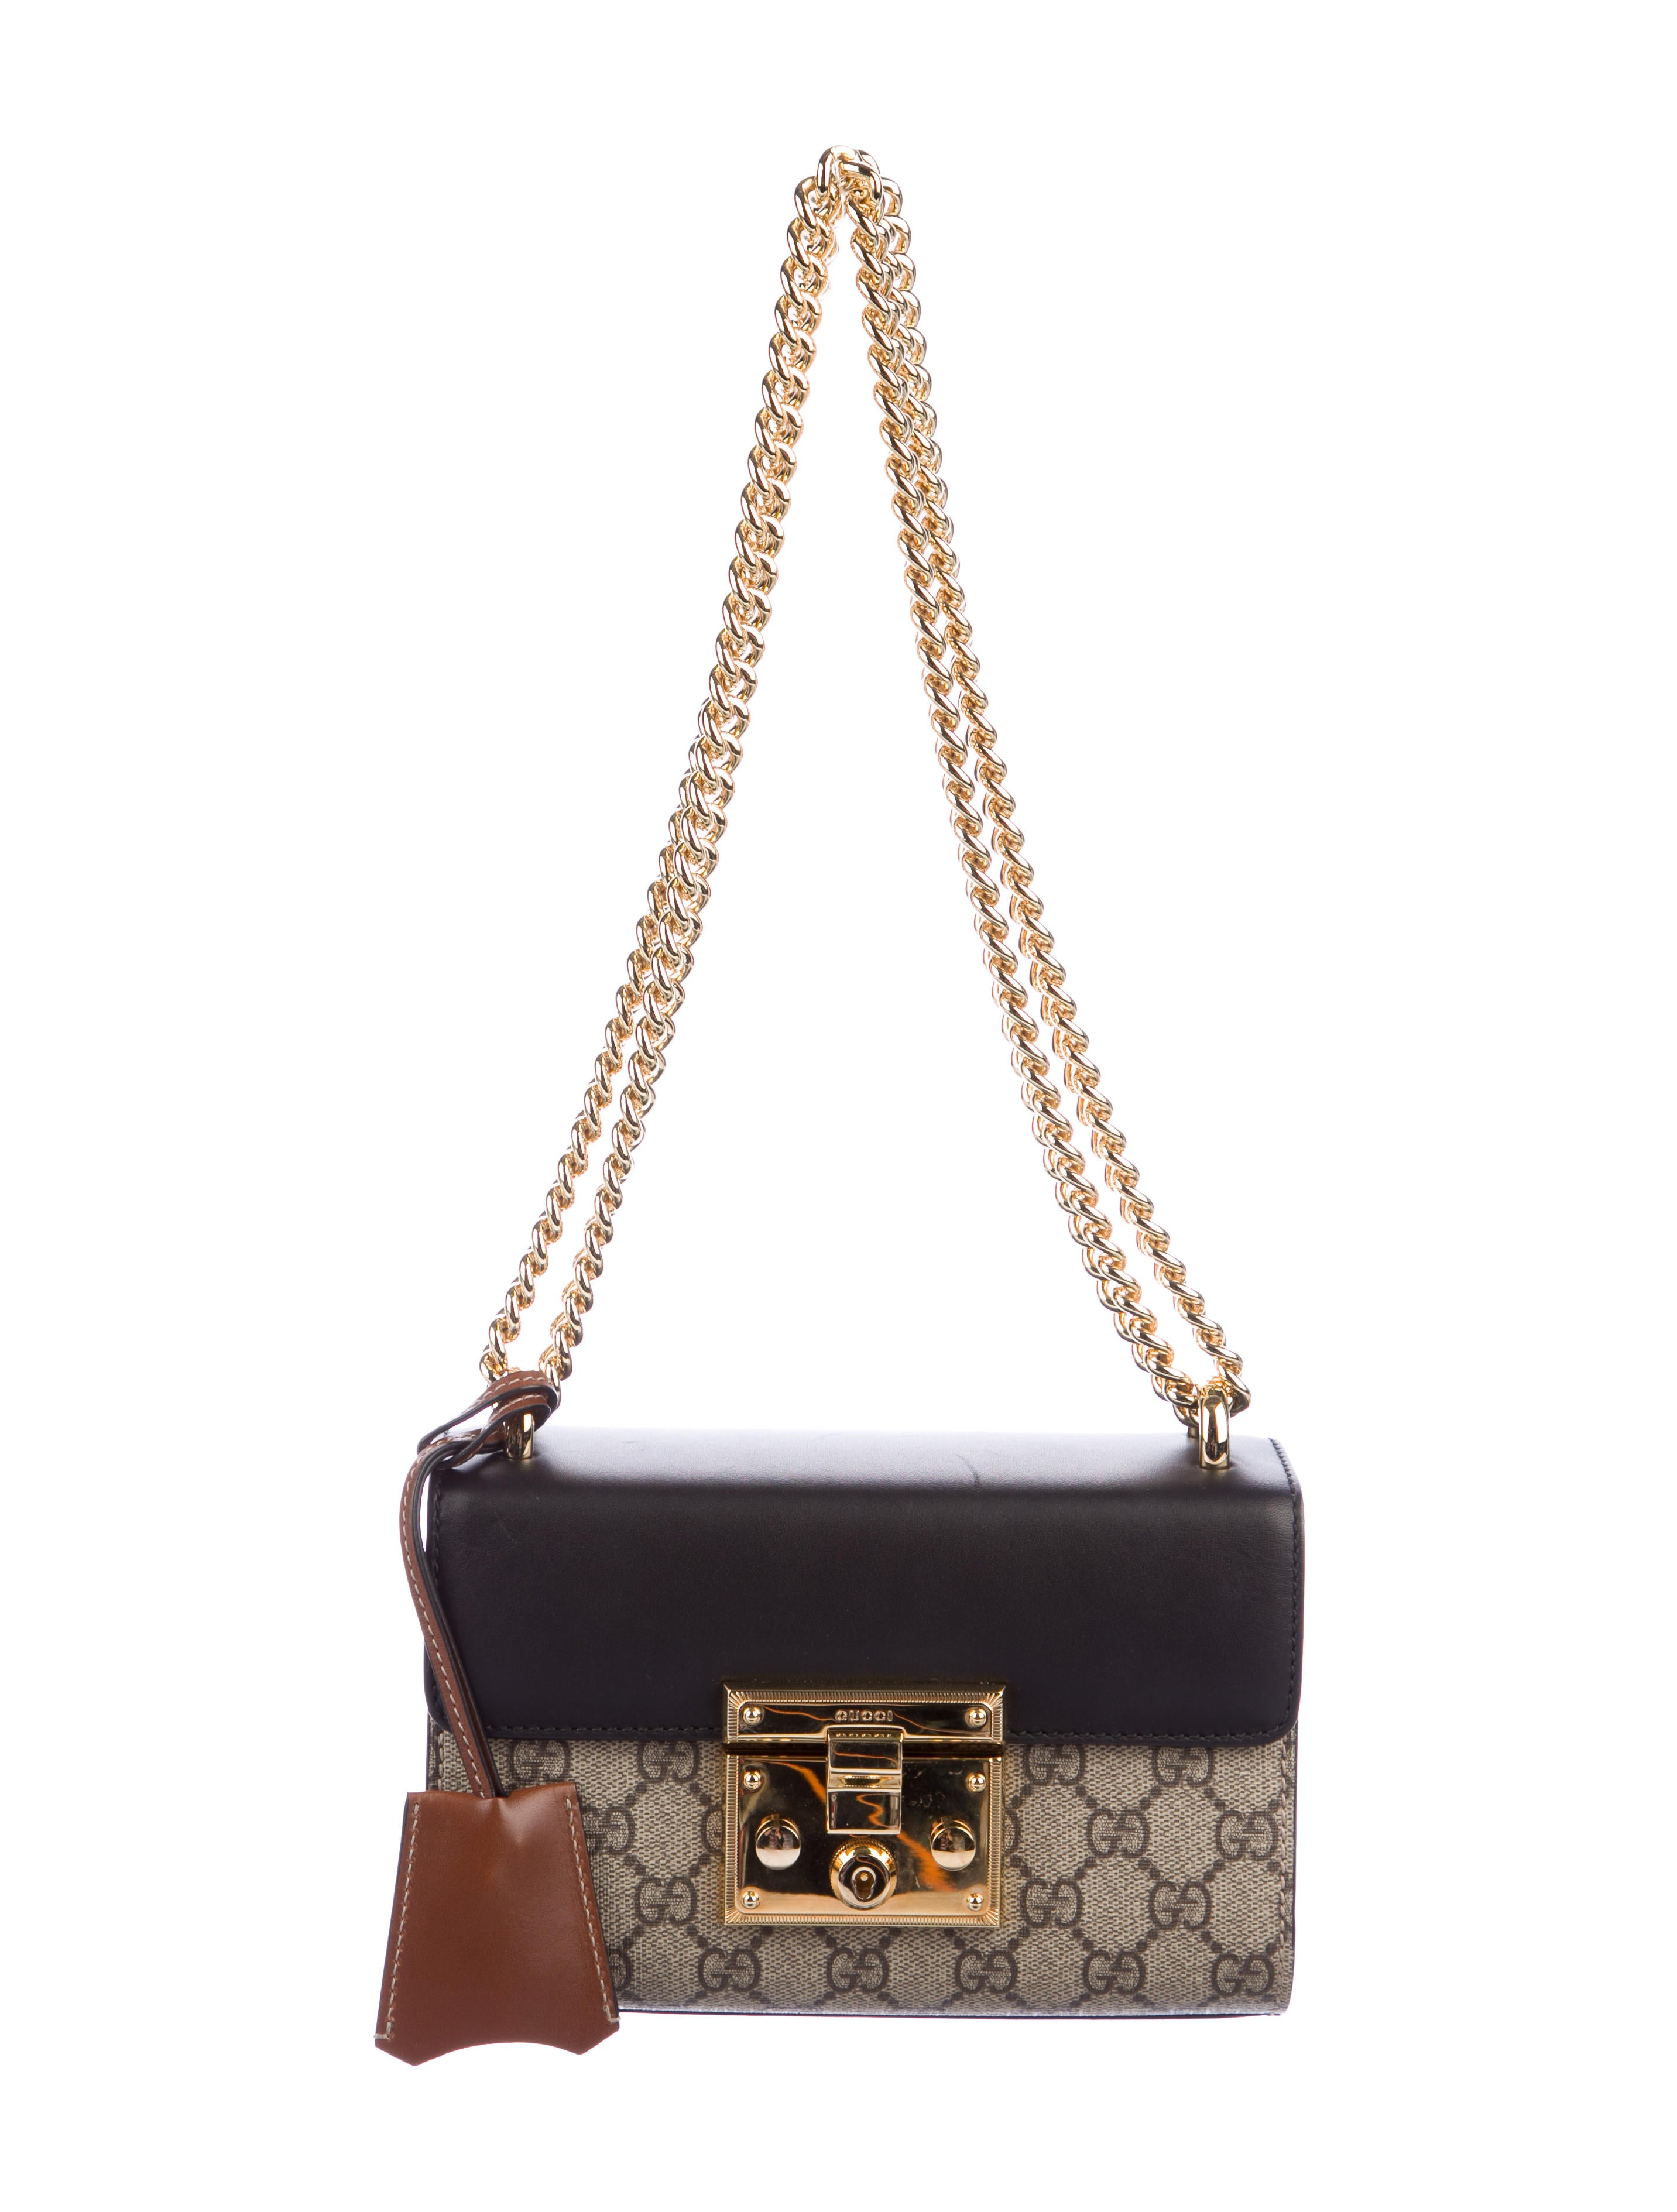 Gucci Crossbody Bags   The RealReal ac64ac7d492